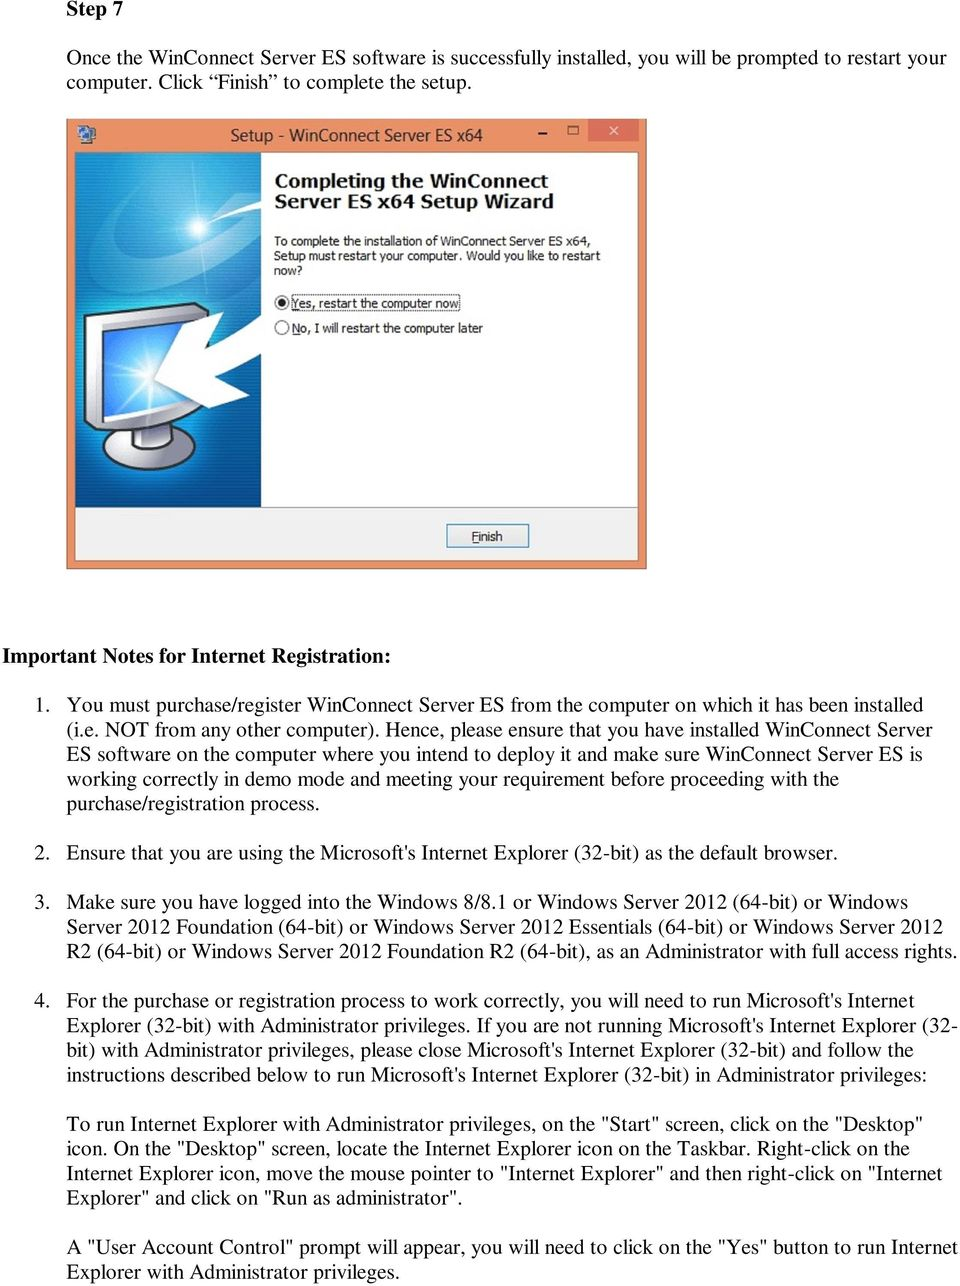 Hence, please ensure that you have installed WinConnect Server ES software on the computer where you intend to deploy it and make sure WinConnect Server ES is working correctly in demo mode and